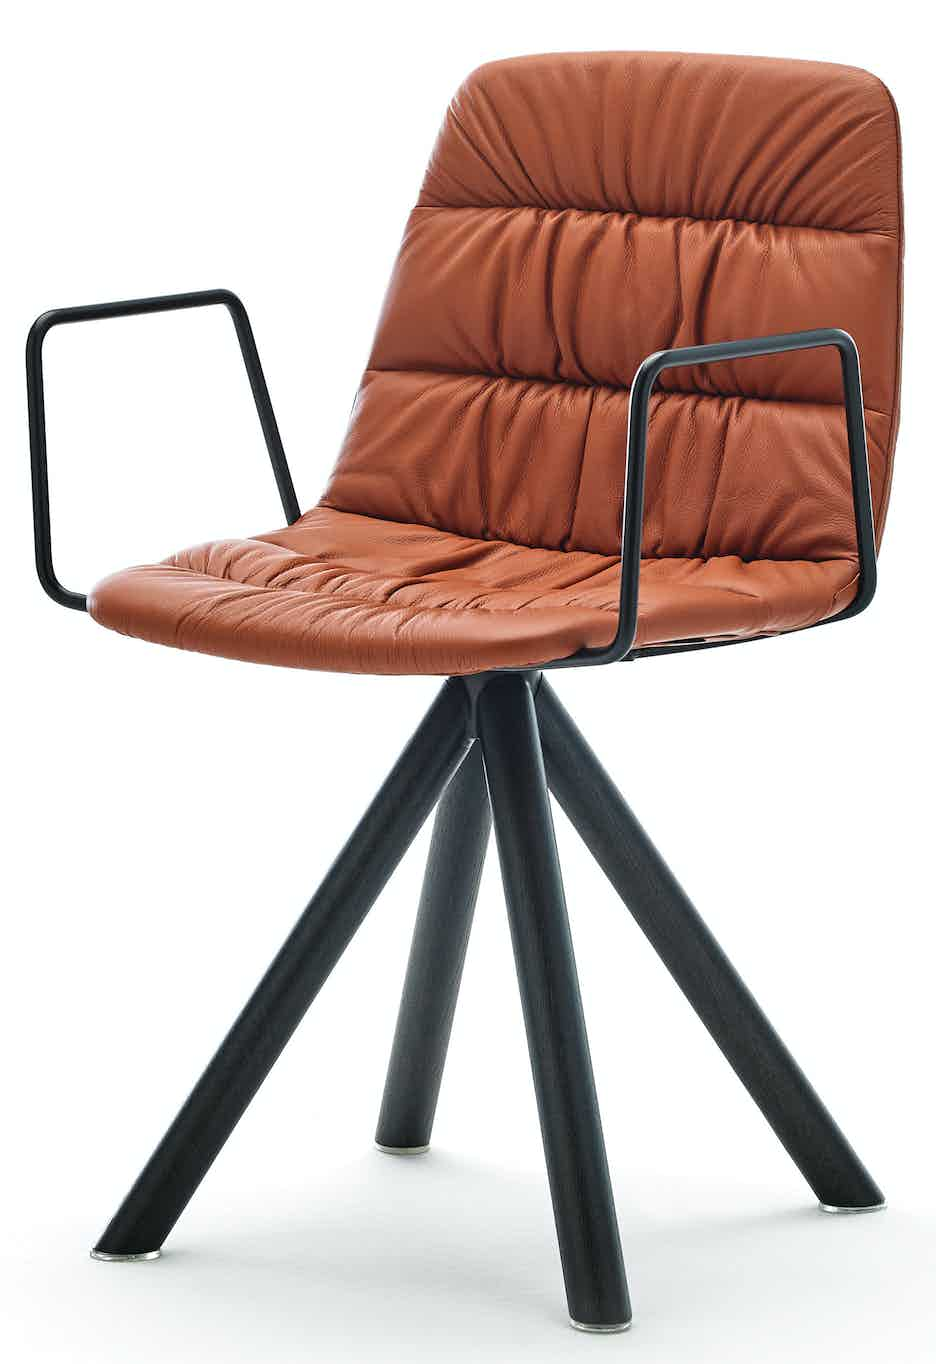 Viccarbe-side-leather-maarten-haute-living